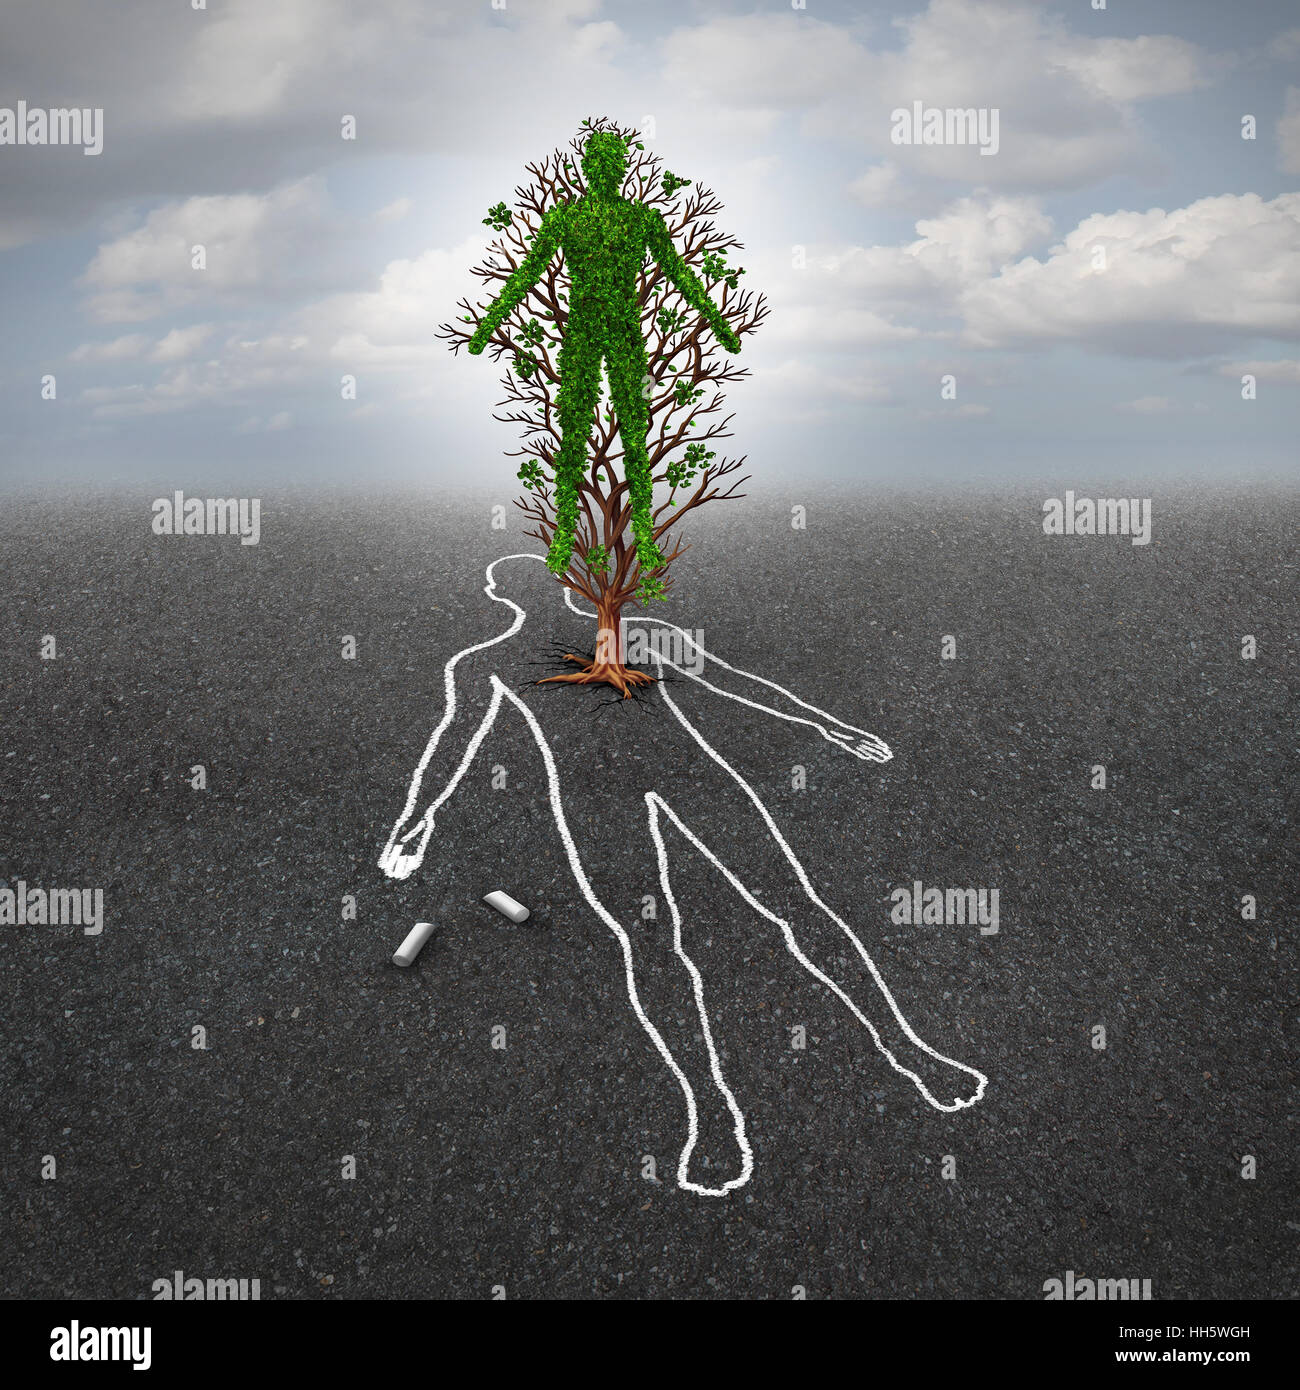 Life after death concept and afterlife symbol or renewal hope metaphor as a tree shaped as a human growing from - Stock Image